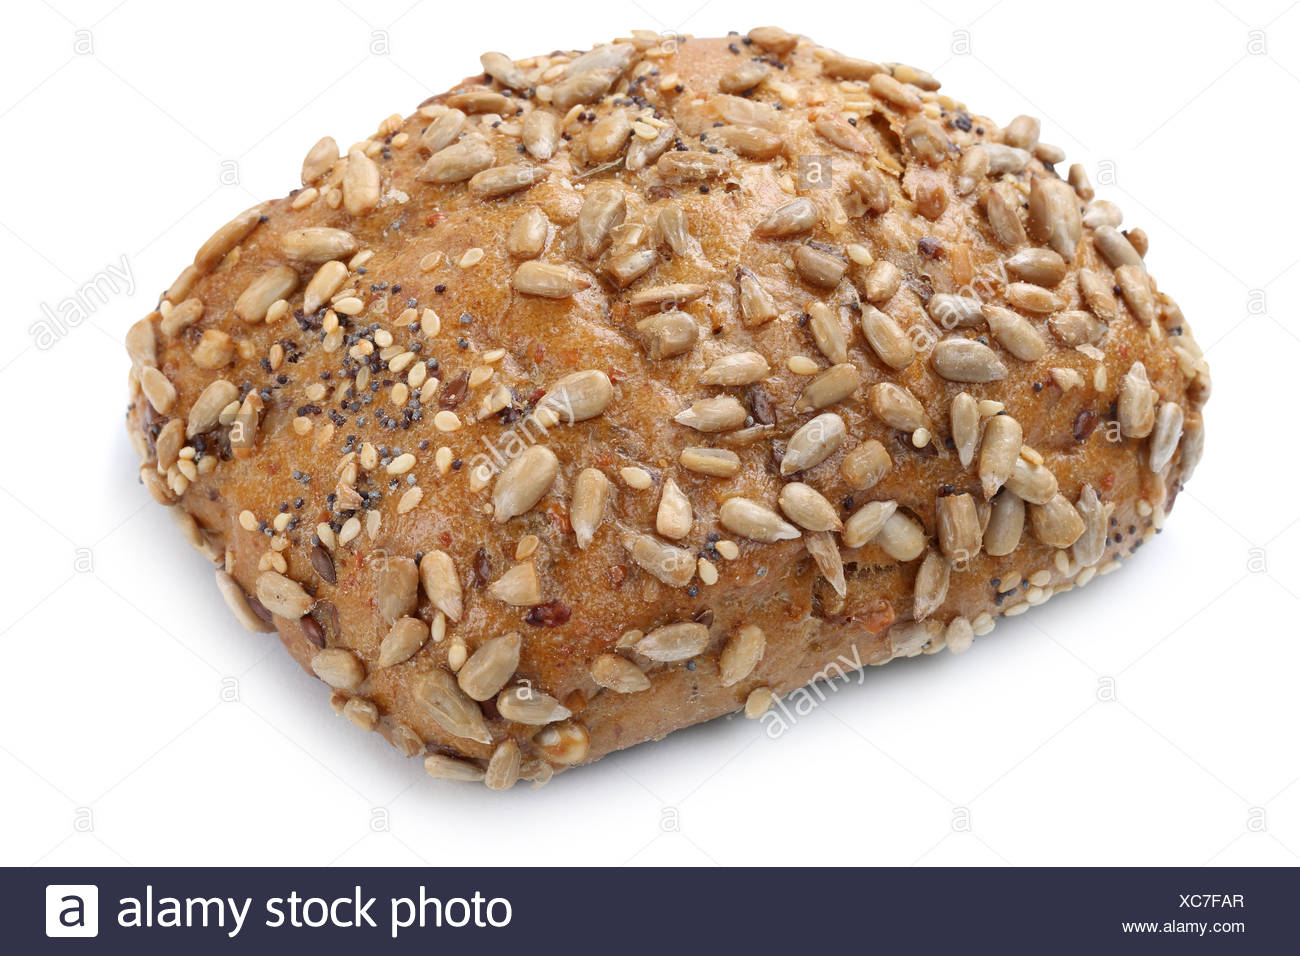 bun sandwich wholemeal isolated exempted for breakfast cut Stock Photo